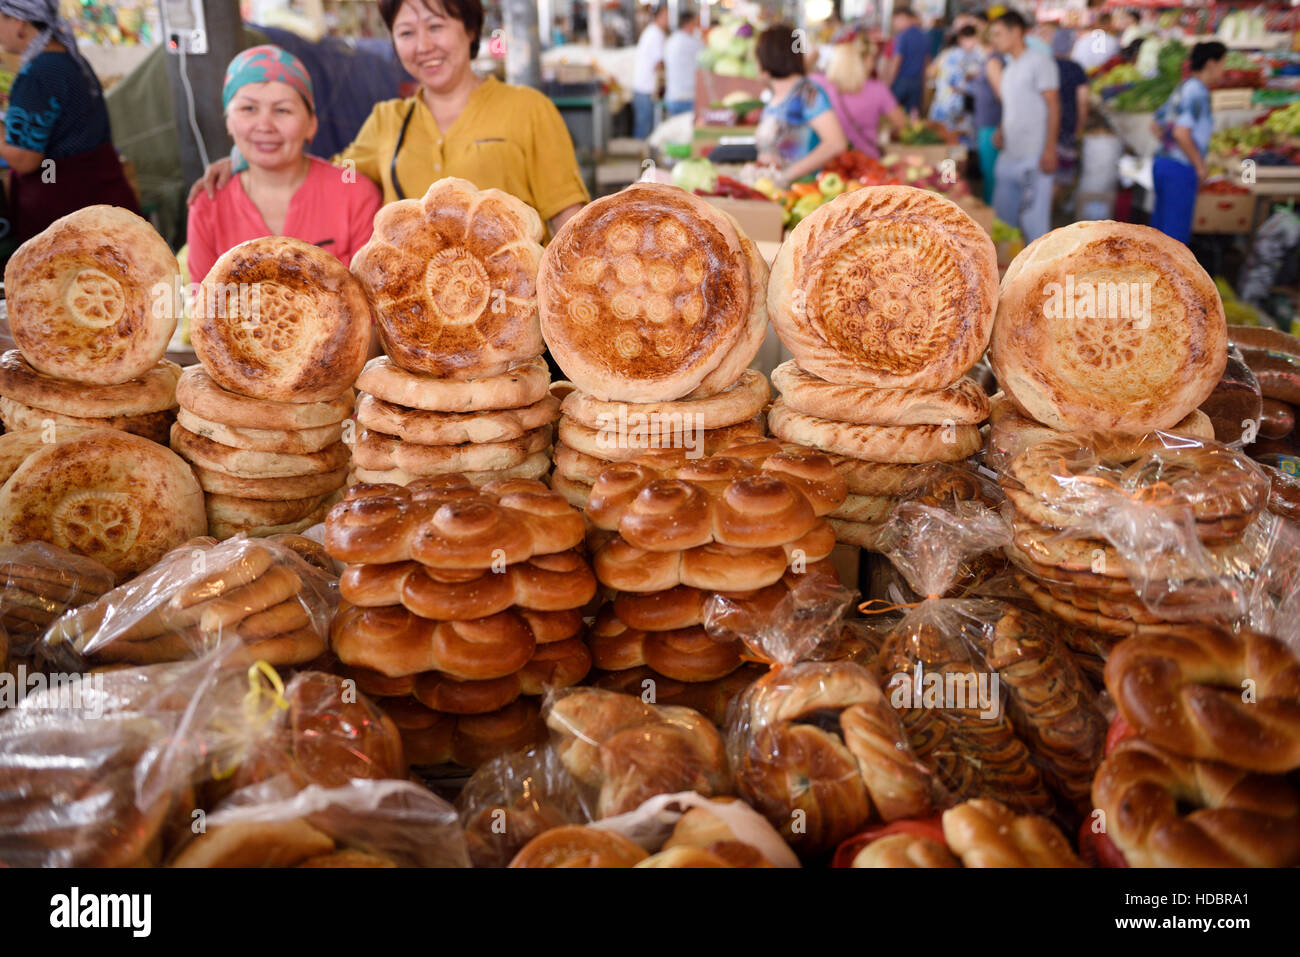 Shop keepers in Shymkent Central Market next to table of Kazkh Tandyr nan breads Kazakhstan Stock Photo